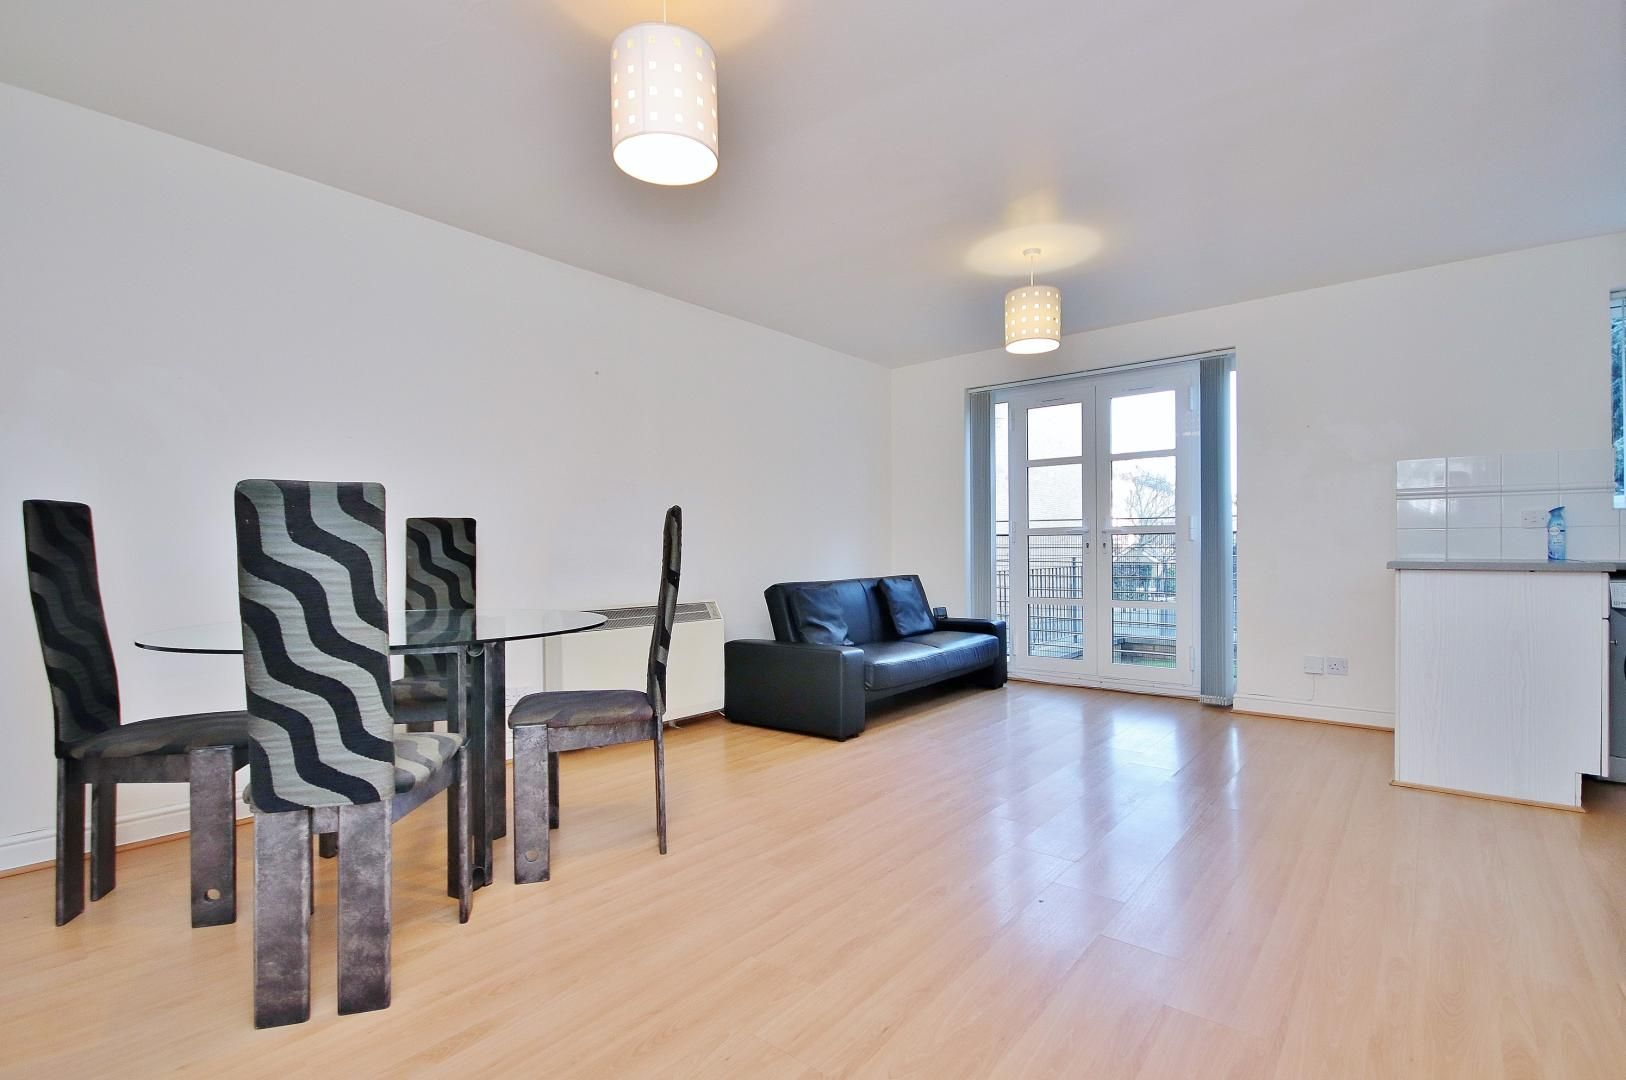 2 bed  to rent in Langbourne Place - Property Image 1